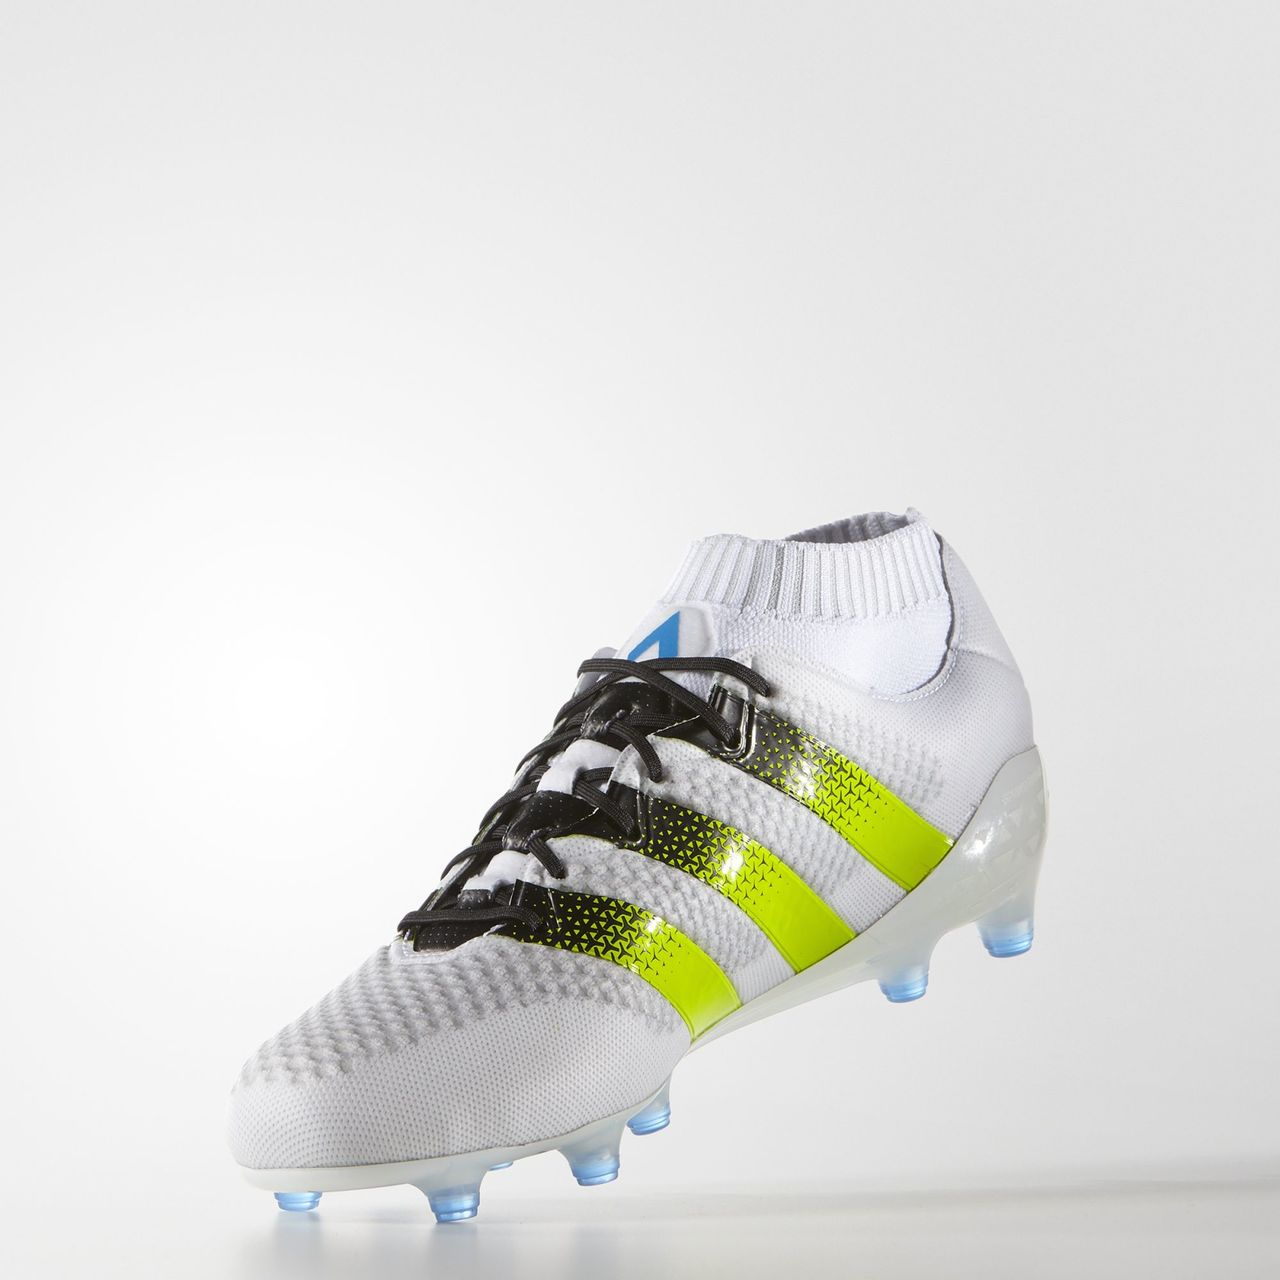 adidas ace 16 1 primeknit firm artificial ground boots. Black Bedroom Furniture Sets. Home Design Ideas